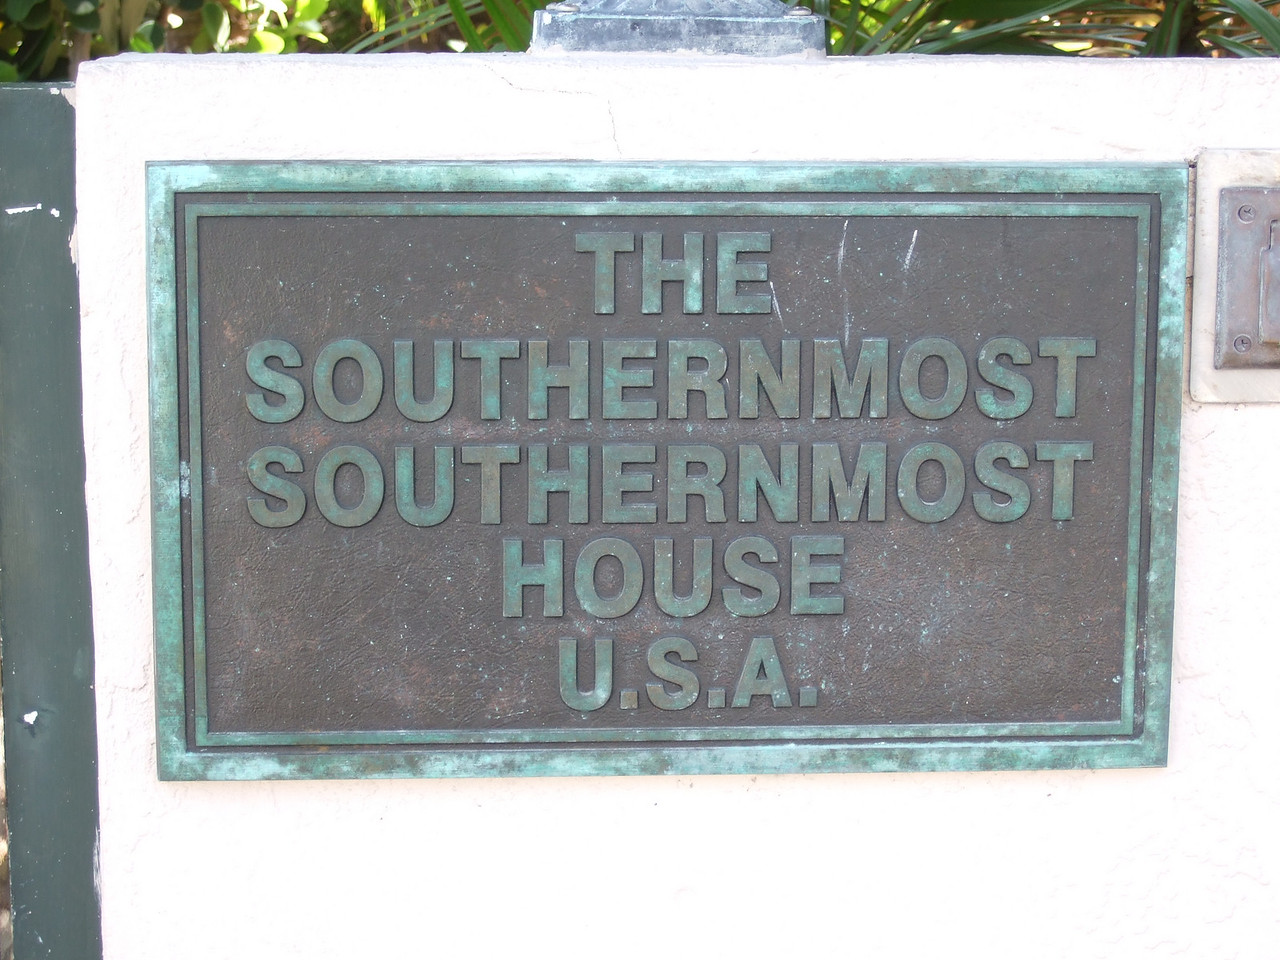 Key West claims to have the southernmost piece of land in the US, a fact used for advertising a great many businesses, including the southernmost southernmost house.